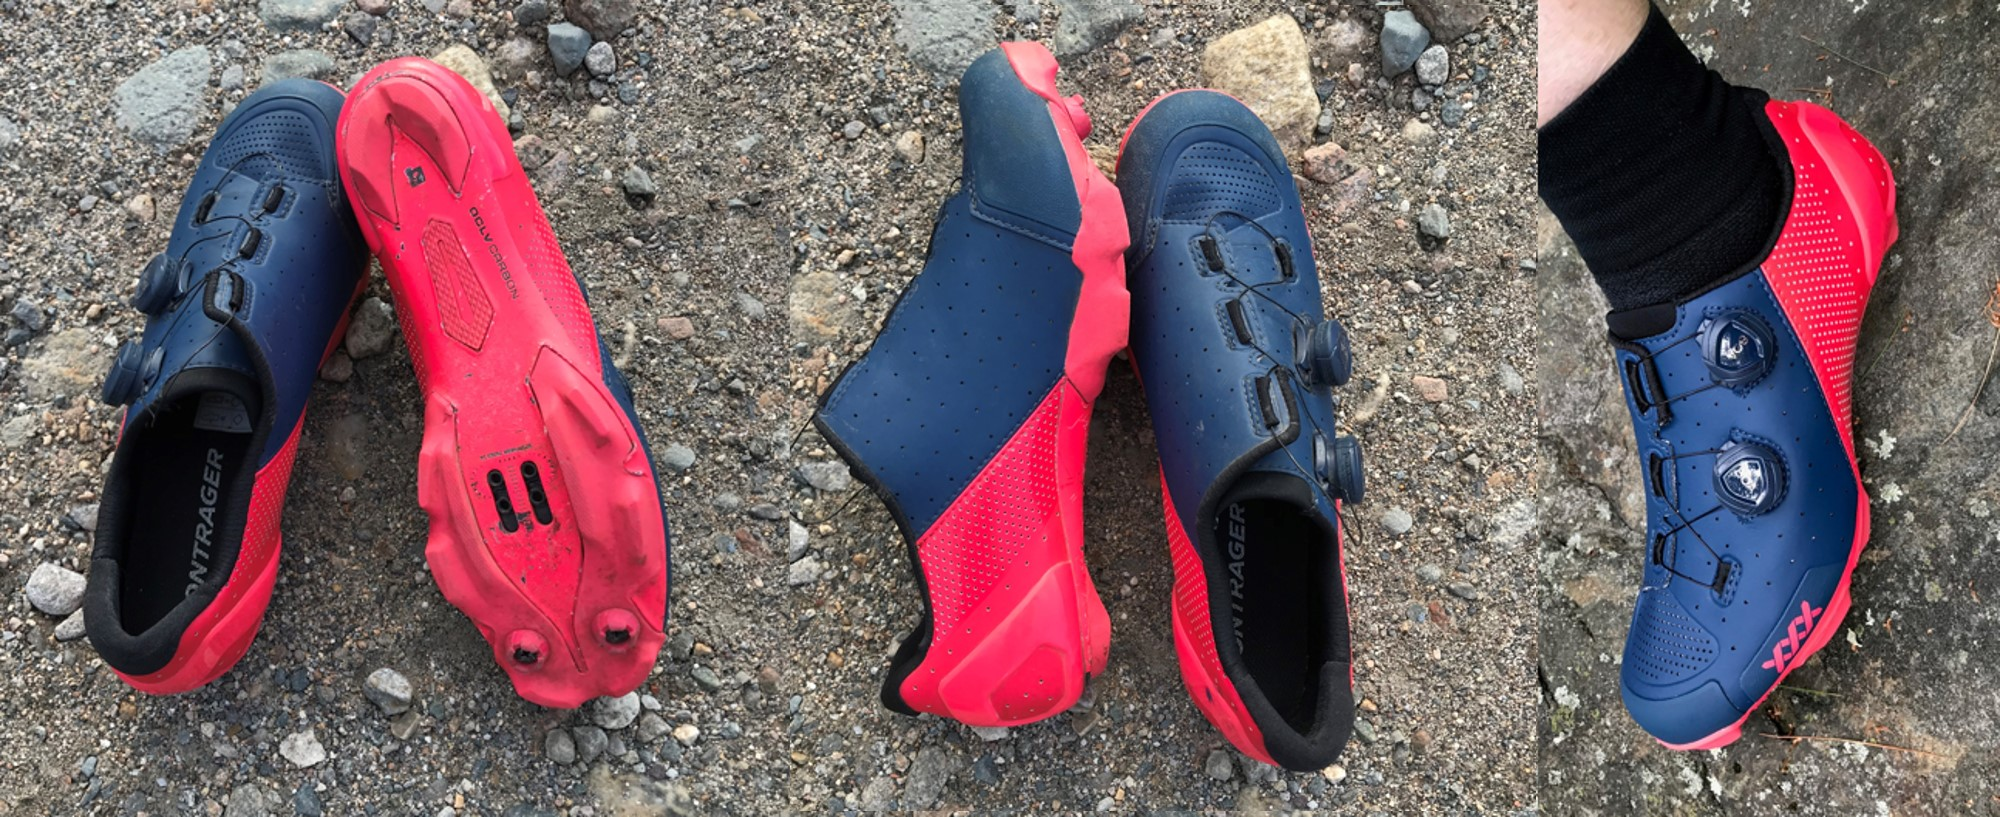 Bontrager XXX Mountain Bike Shoes